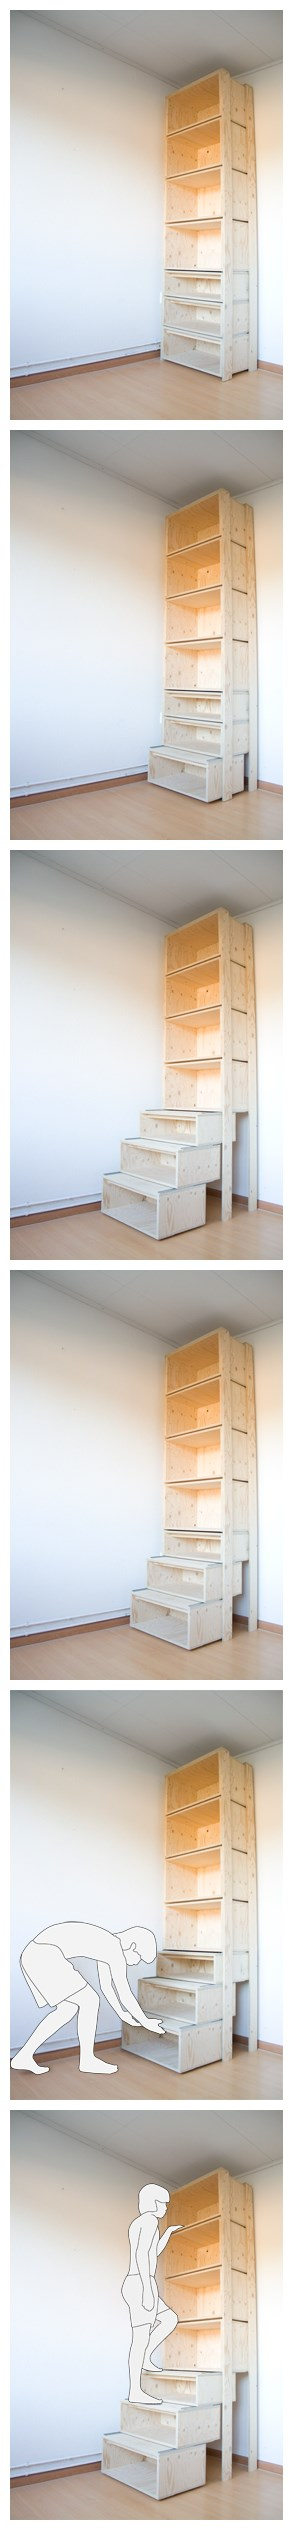 How to build efficient storage staircase DIY step by step tutorial instructions